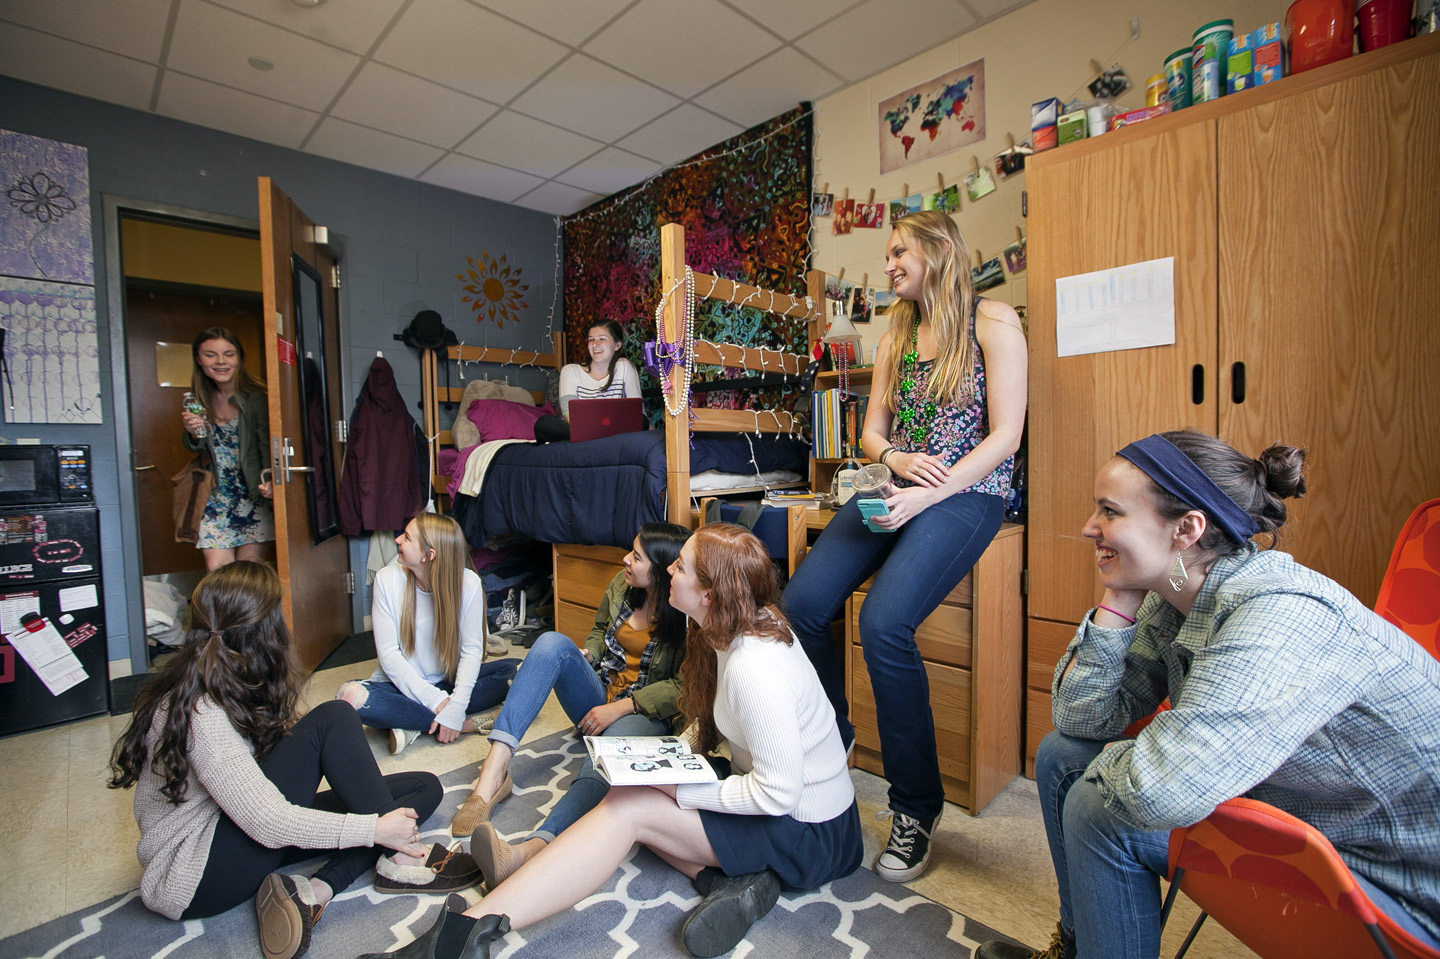 Party girls college dorm rooms are